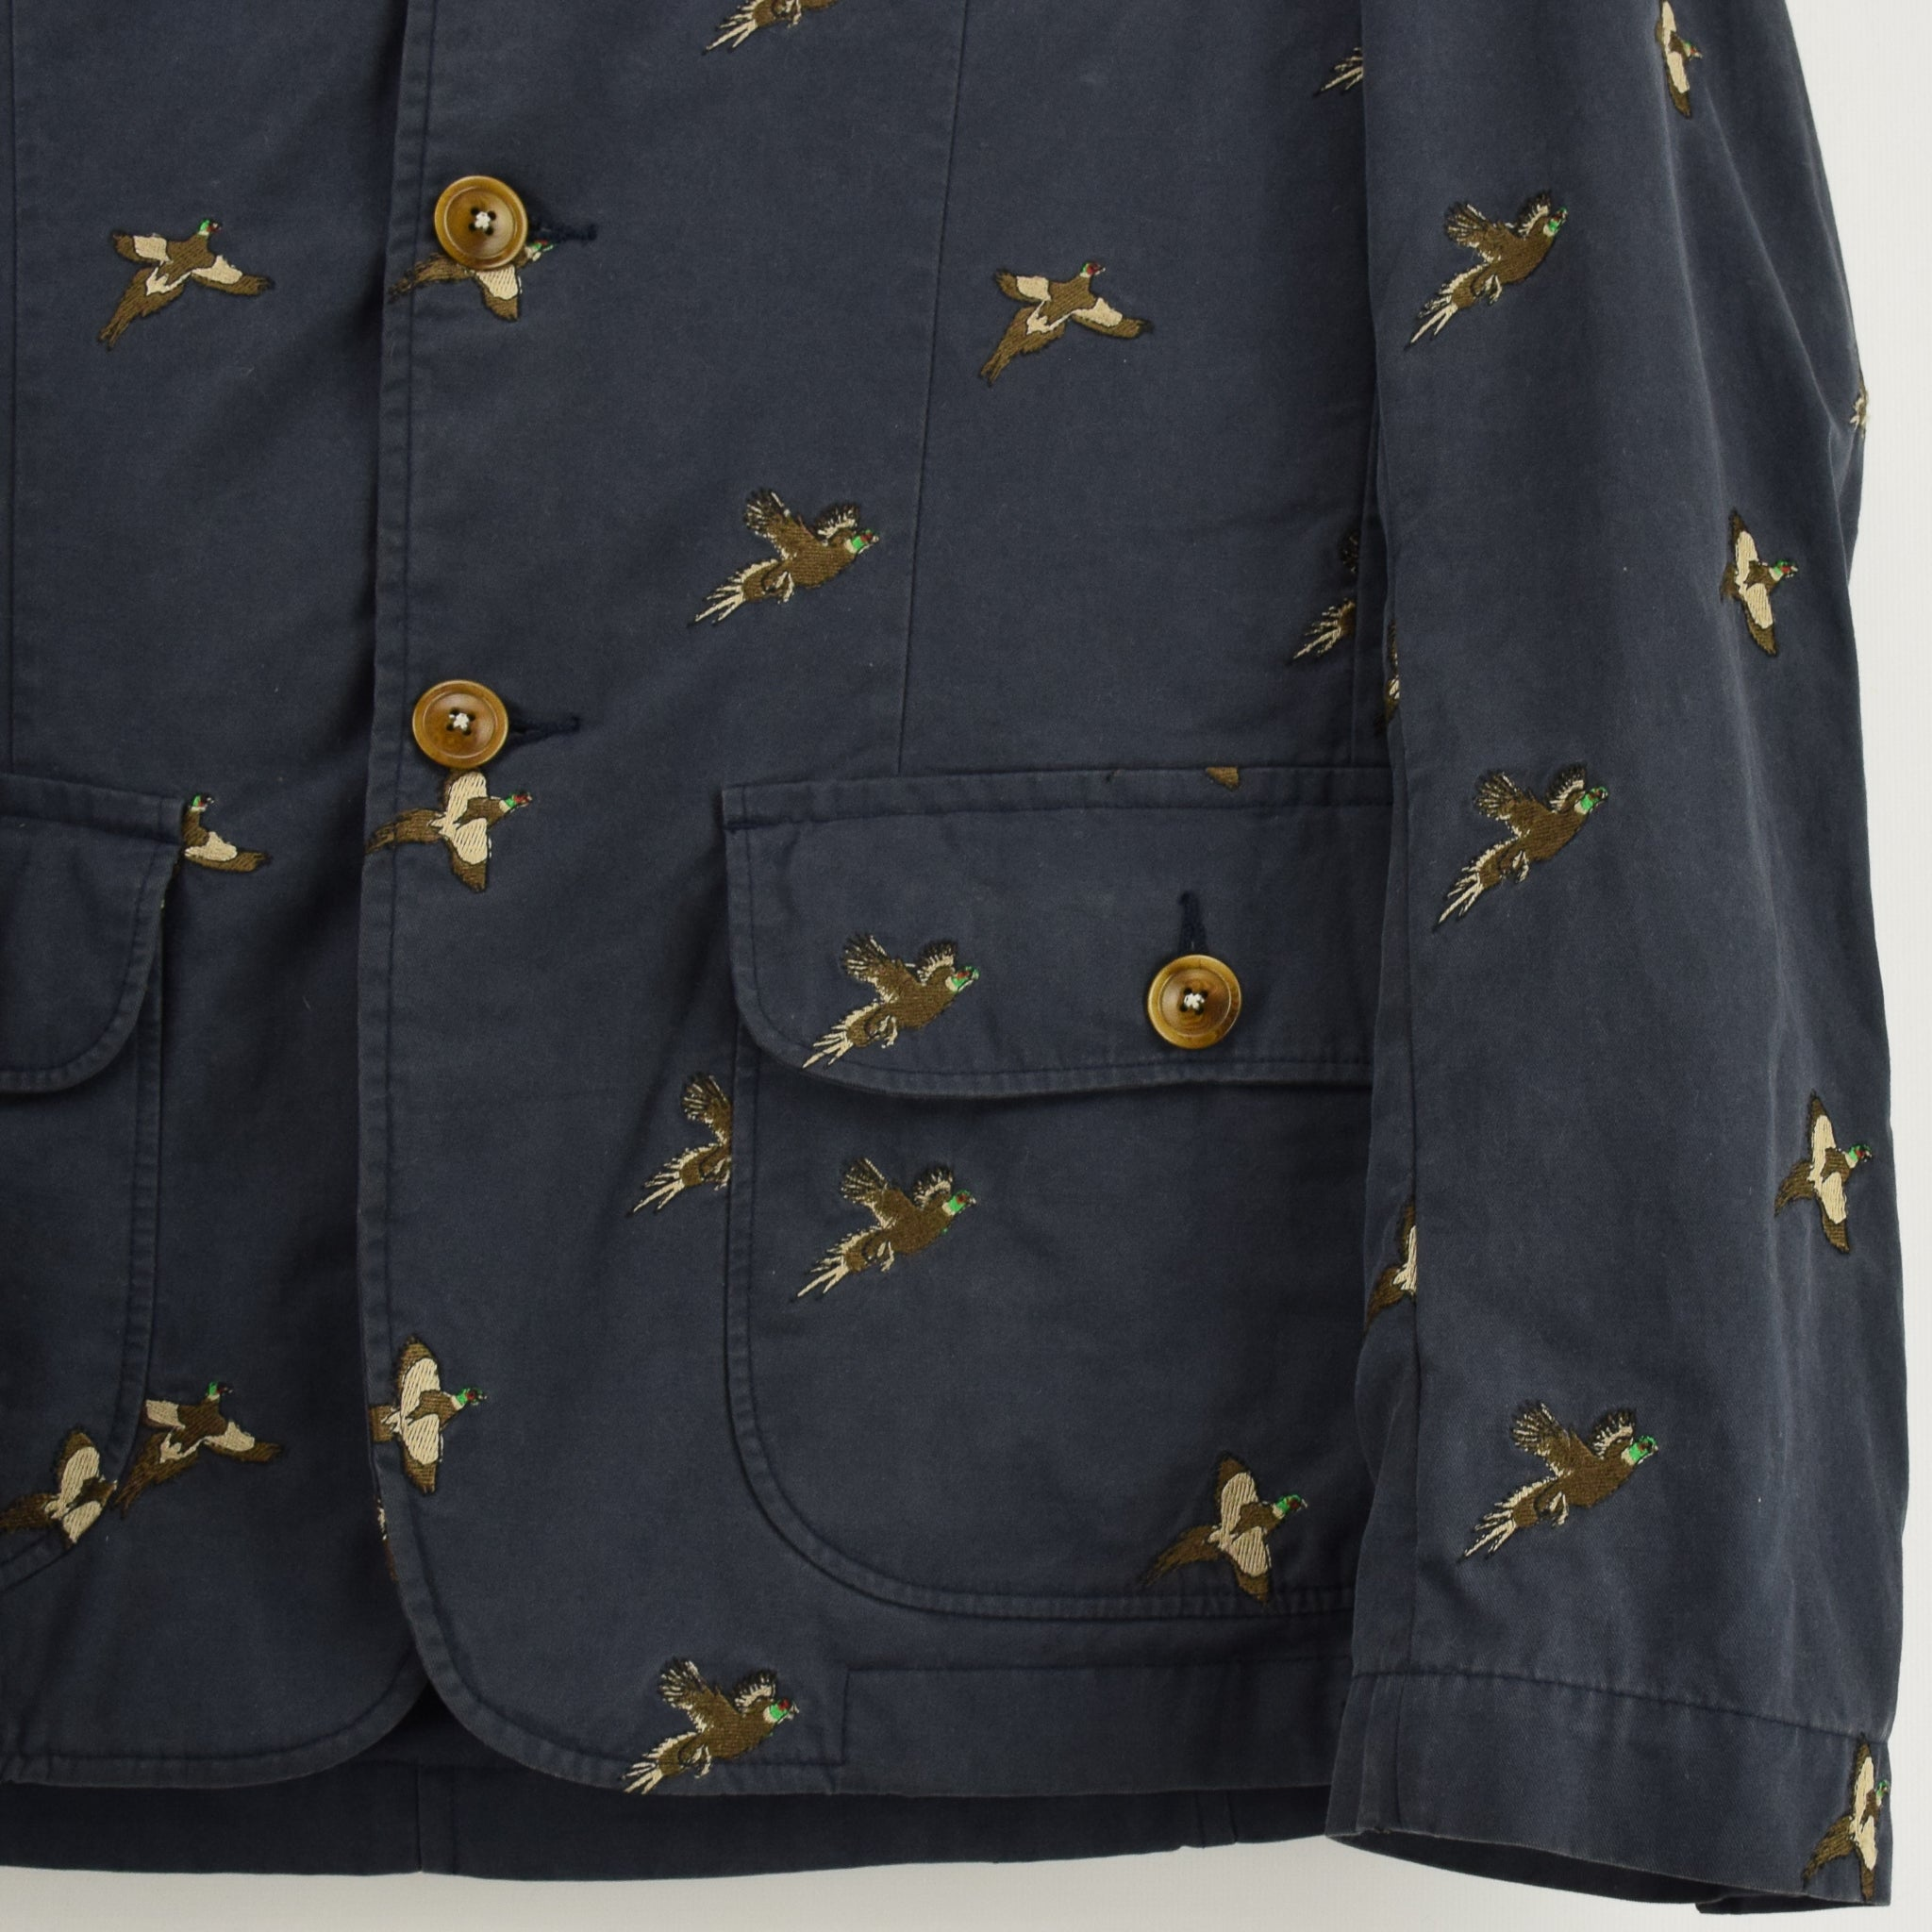 Barbour Navy Blue Cotton Blazer Jacket With Duck Print S front hem